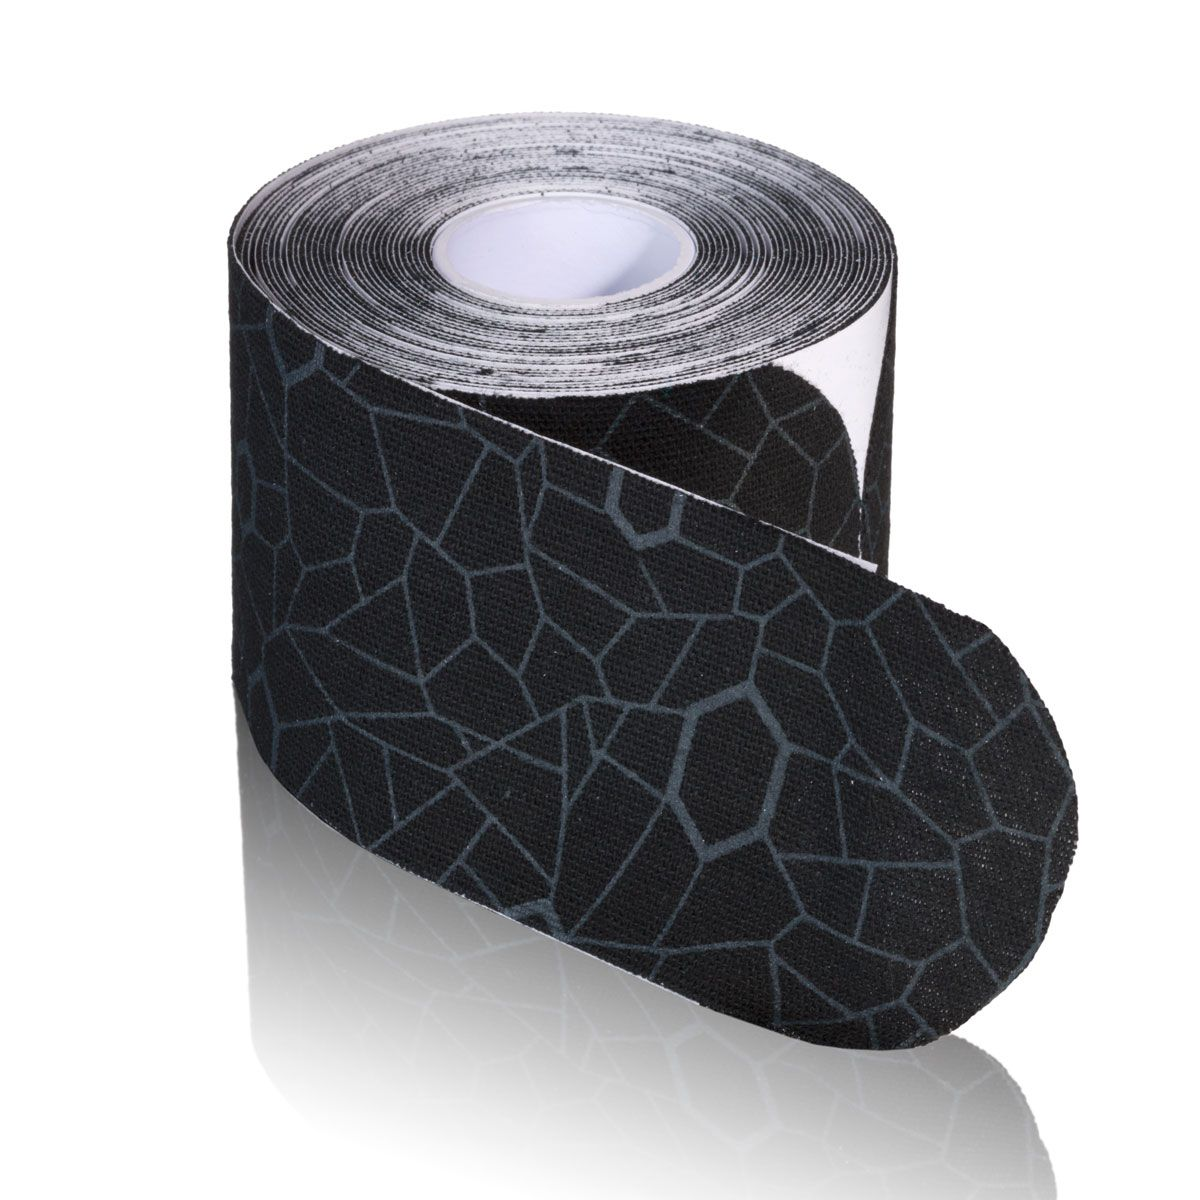 TheraBand Kinesiology Tape, 20 pack, 2 in x 10 in, Black/Grey